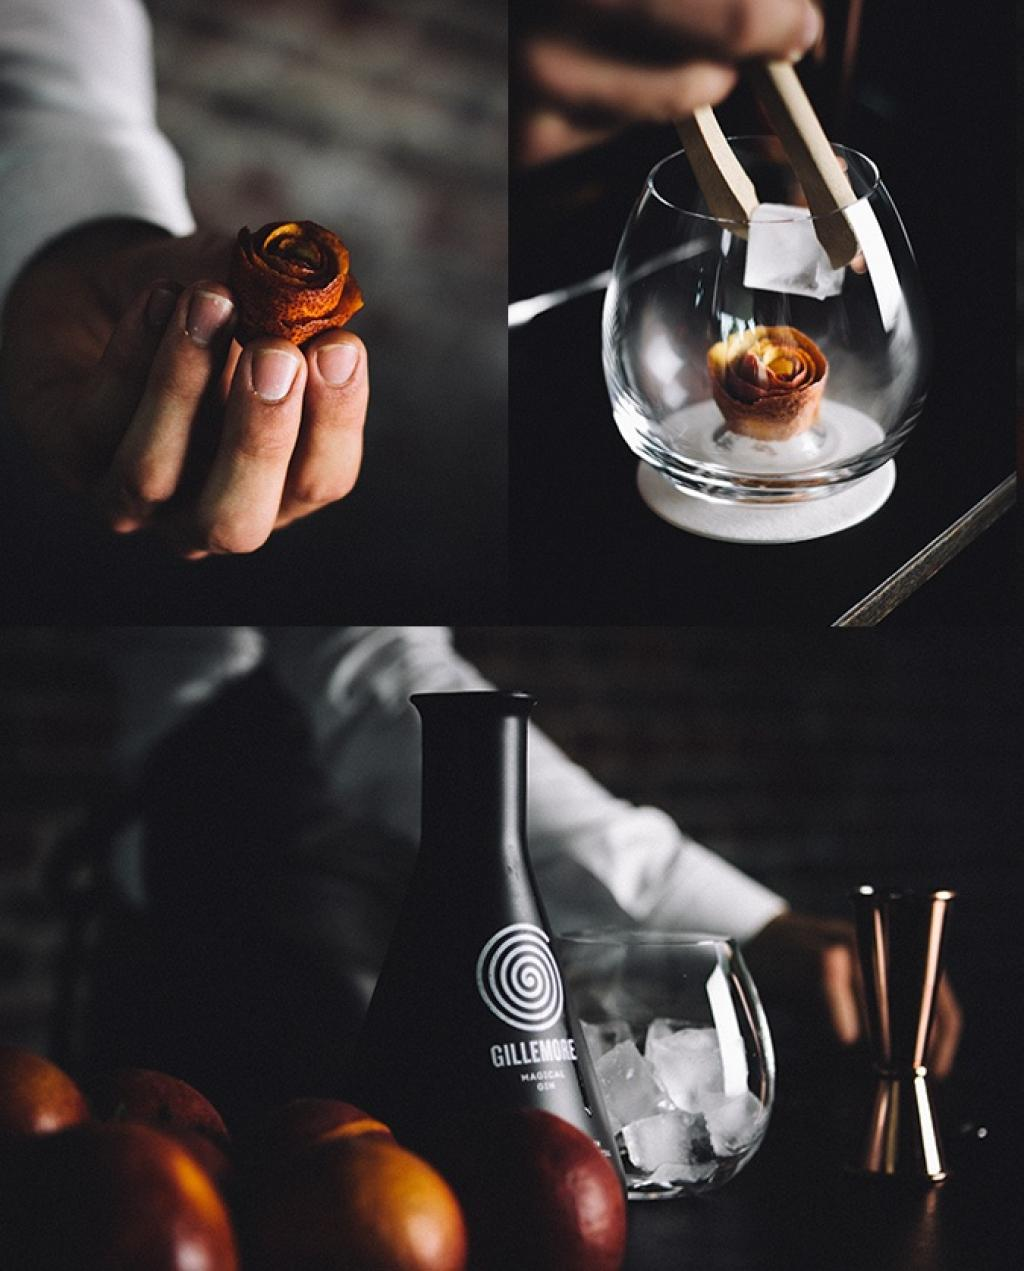 Gillemore gin into a magical brew and it is ready to be tasted and, most importantly, to be enjoyed.